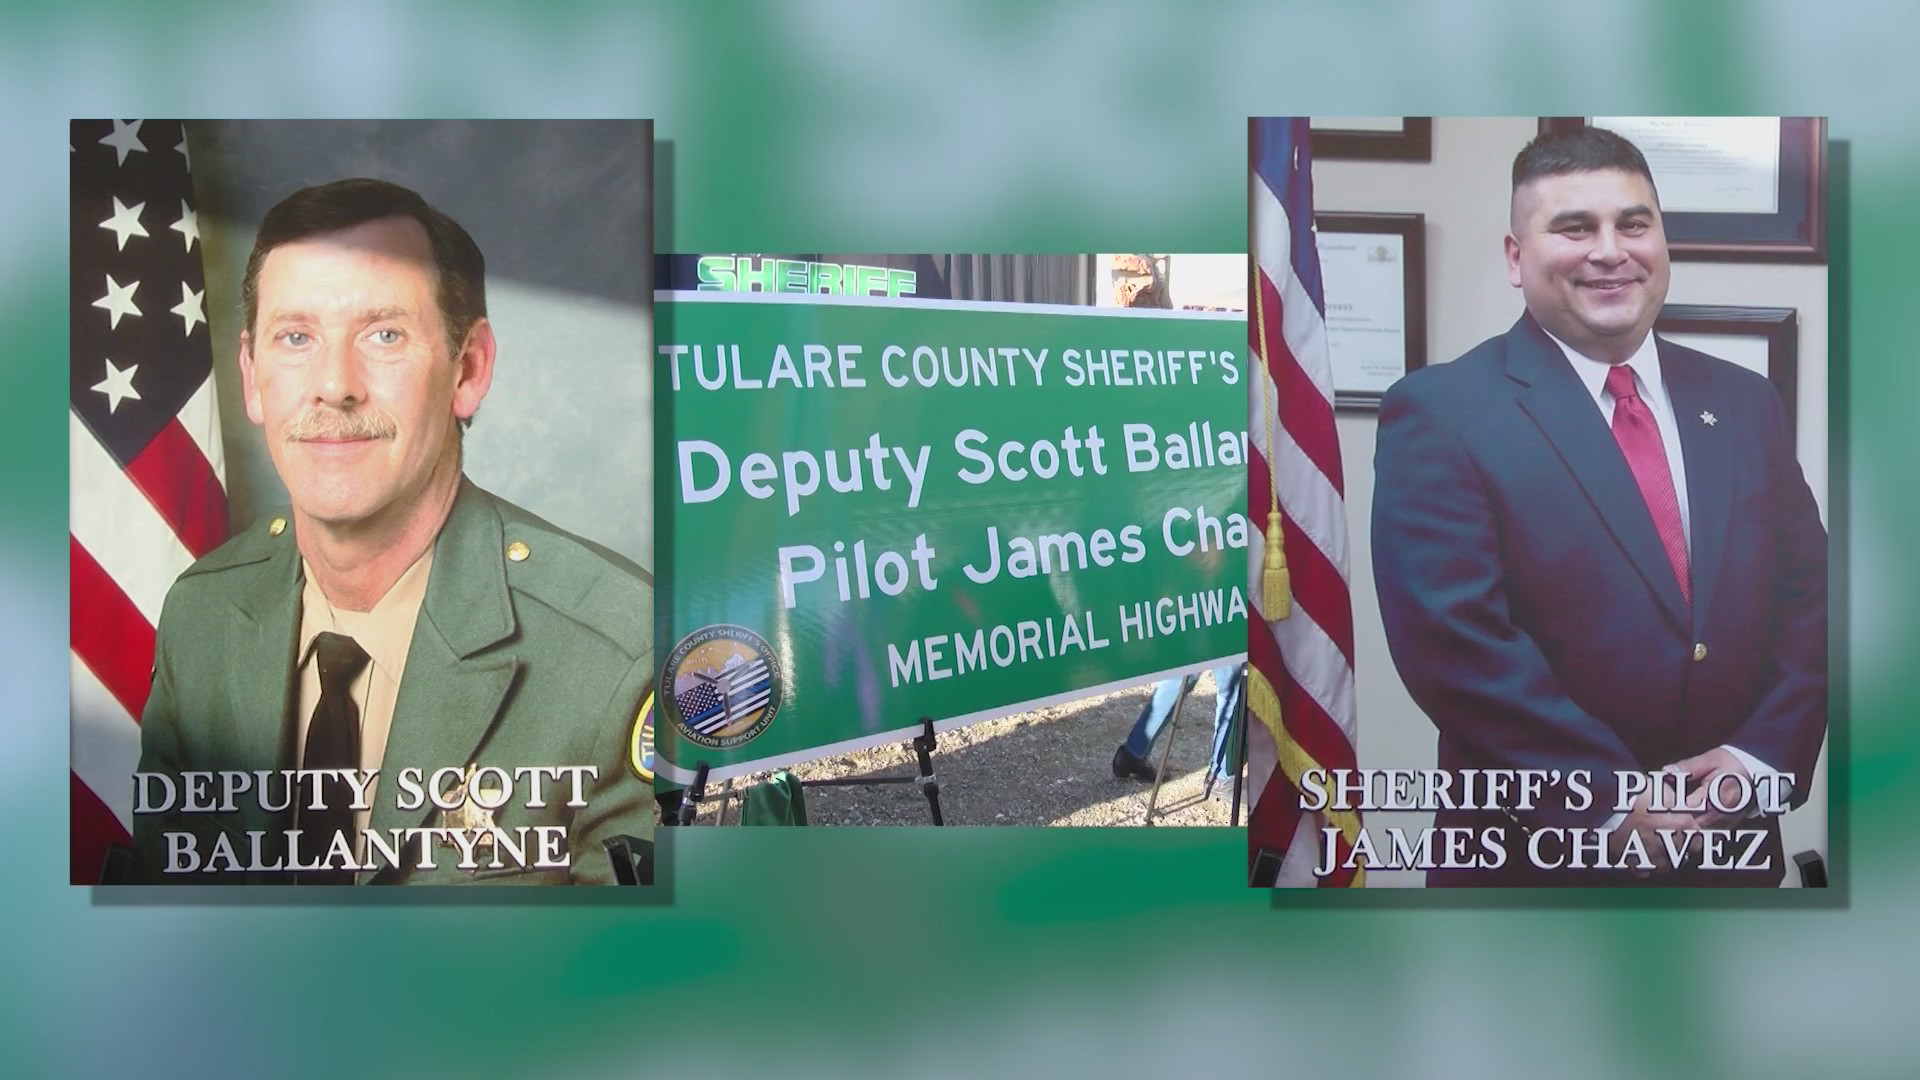 Sign honoring two killed in the line of duty is defaced in Tulare County